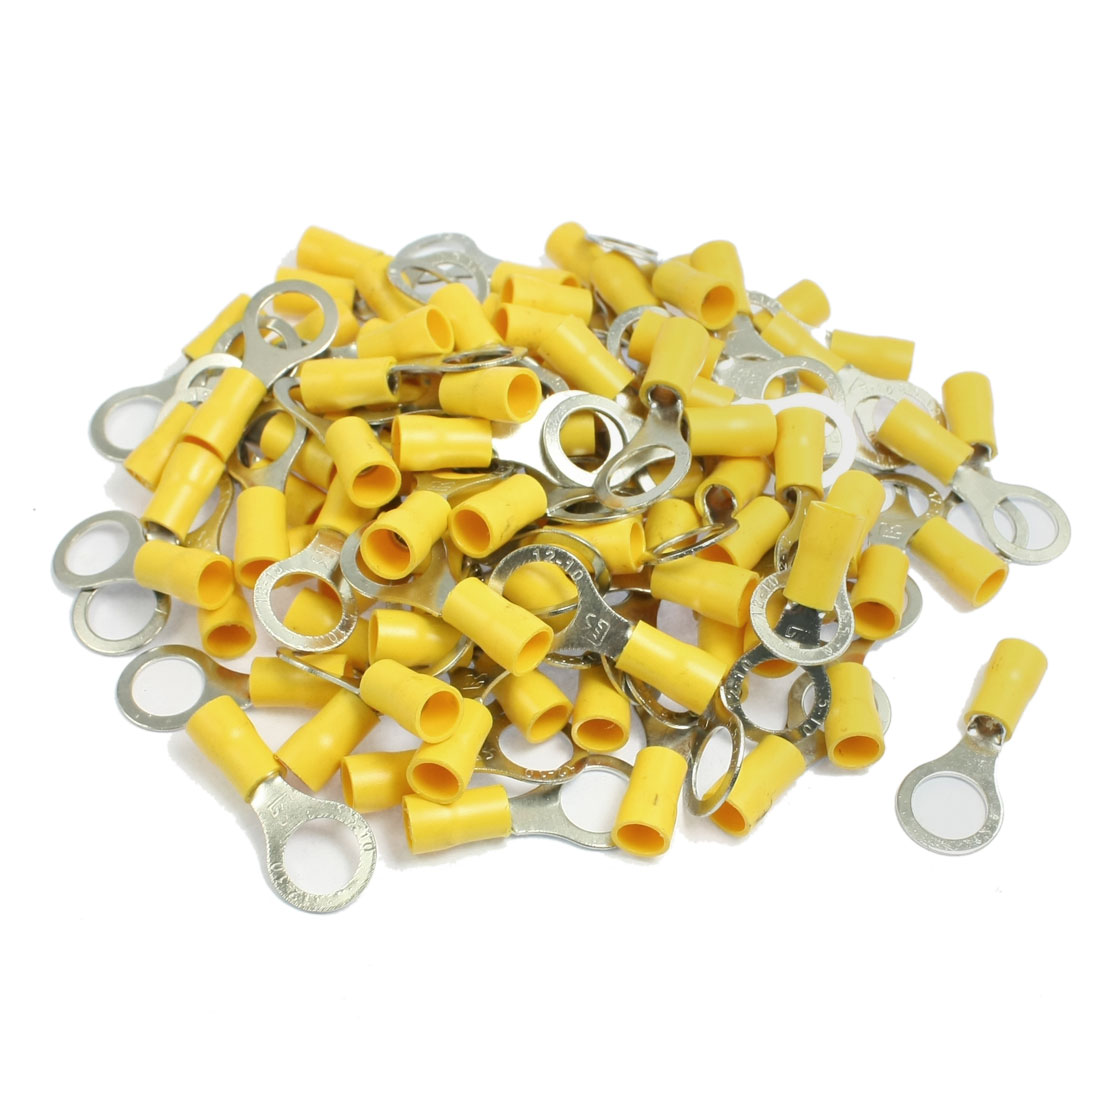 RV5.5-10 Ring Tongue Type Pre Insulated Terminals Yellow 200pcs for AWG 12-10